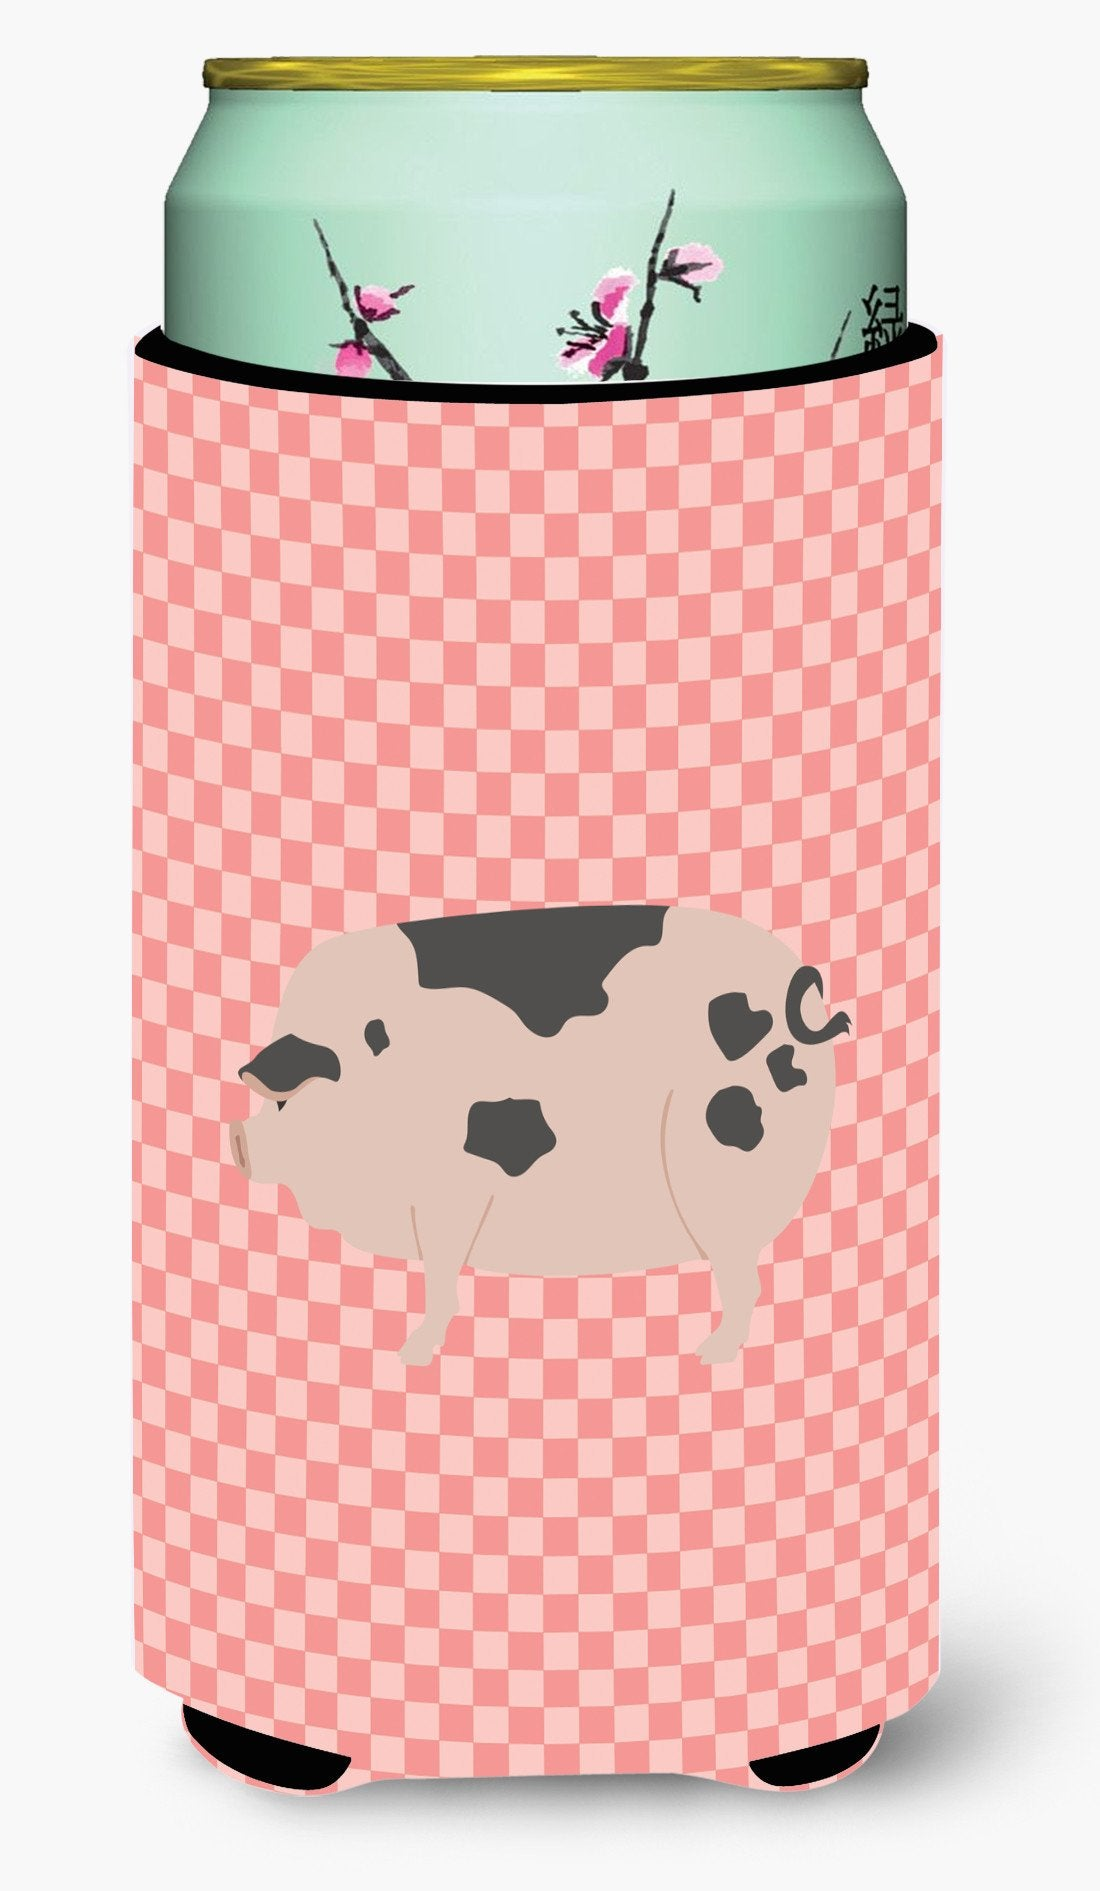 Gloucester Old Spot Pig Pink Check Tall Boy Beverage Insulator Hugger BB7940TBC by Caroline's Treasures